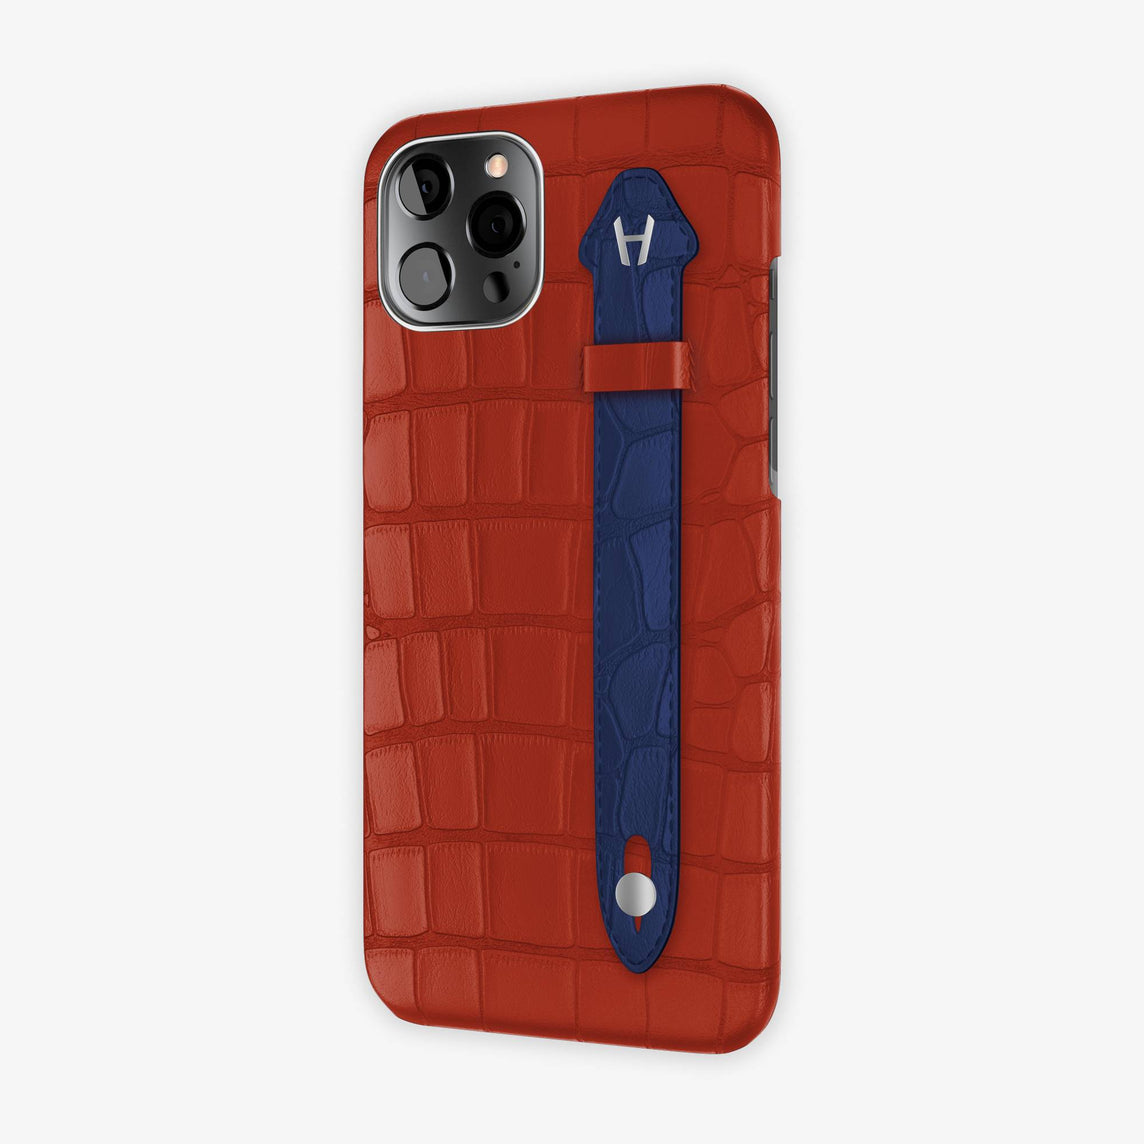 Alligator Side Finger Case iPhone 12 Pro Max | Red/Navy Blue - Stainless-Steel